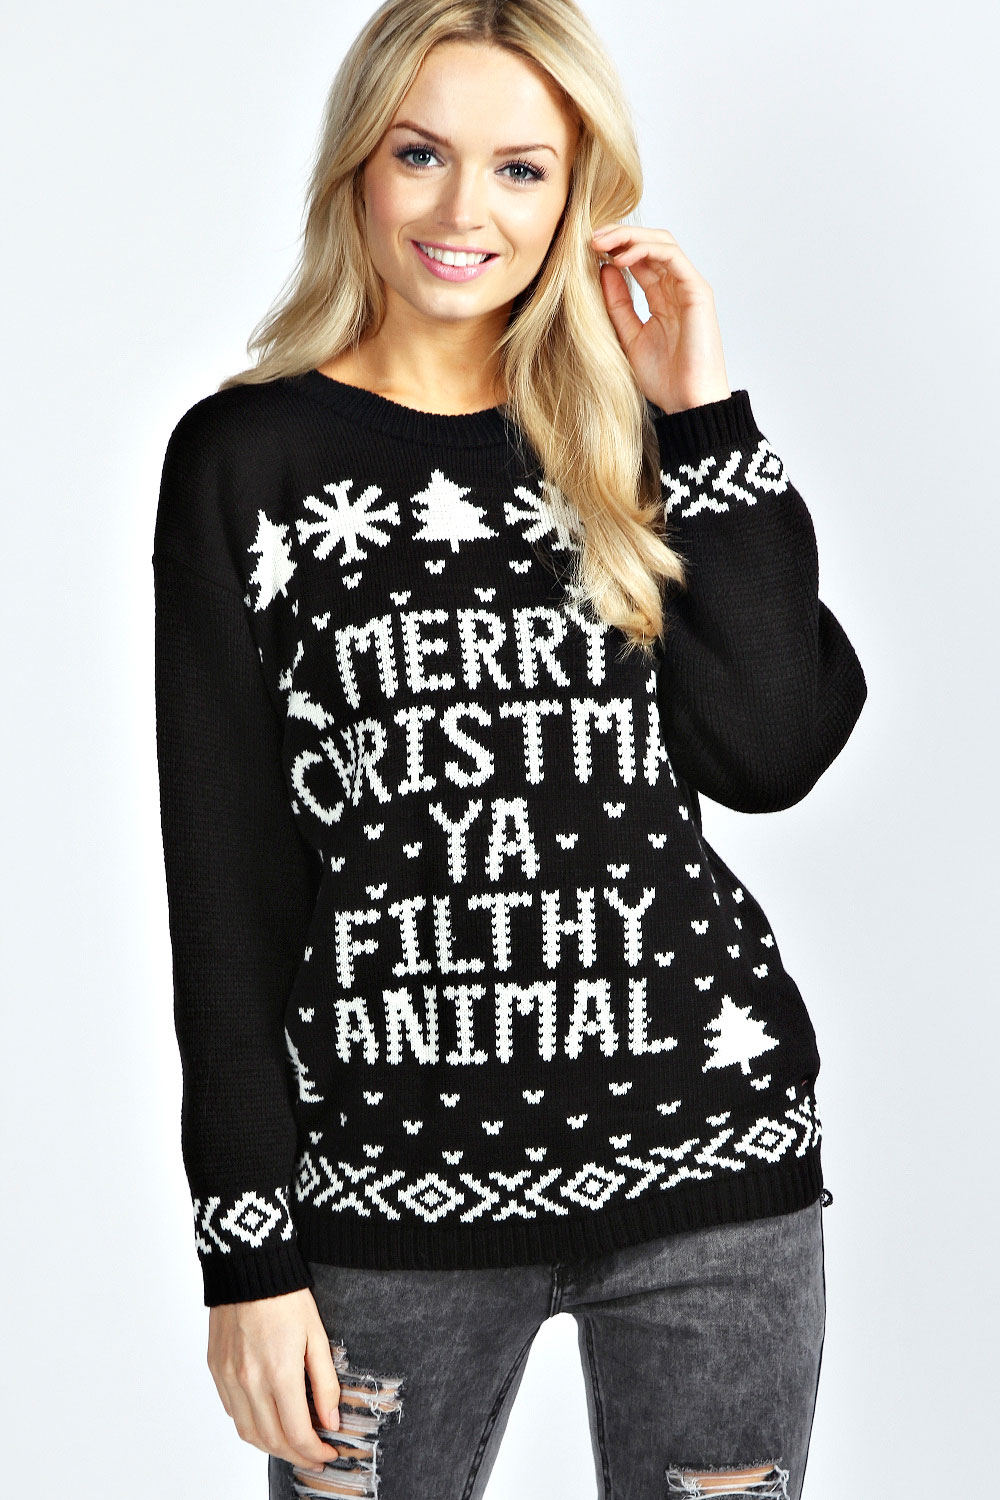 Merry christmas you filthy animals sweater